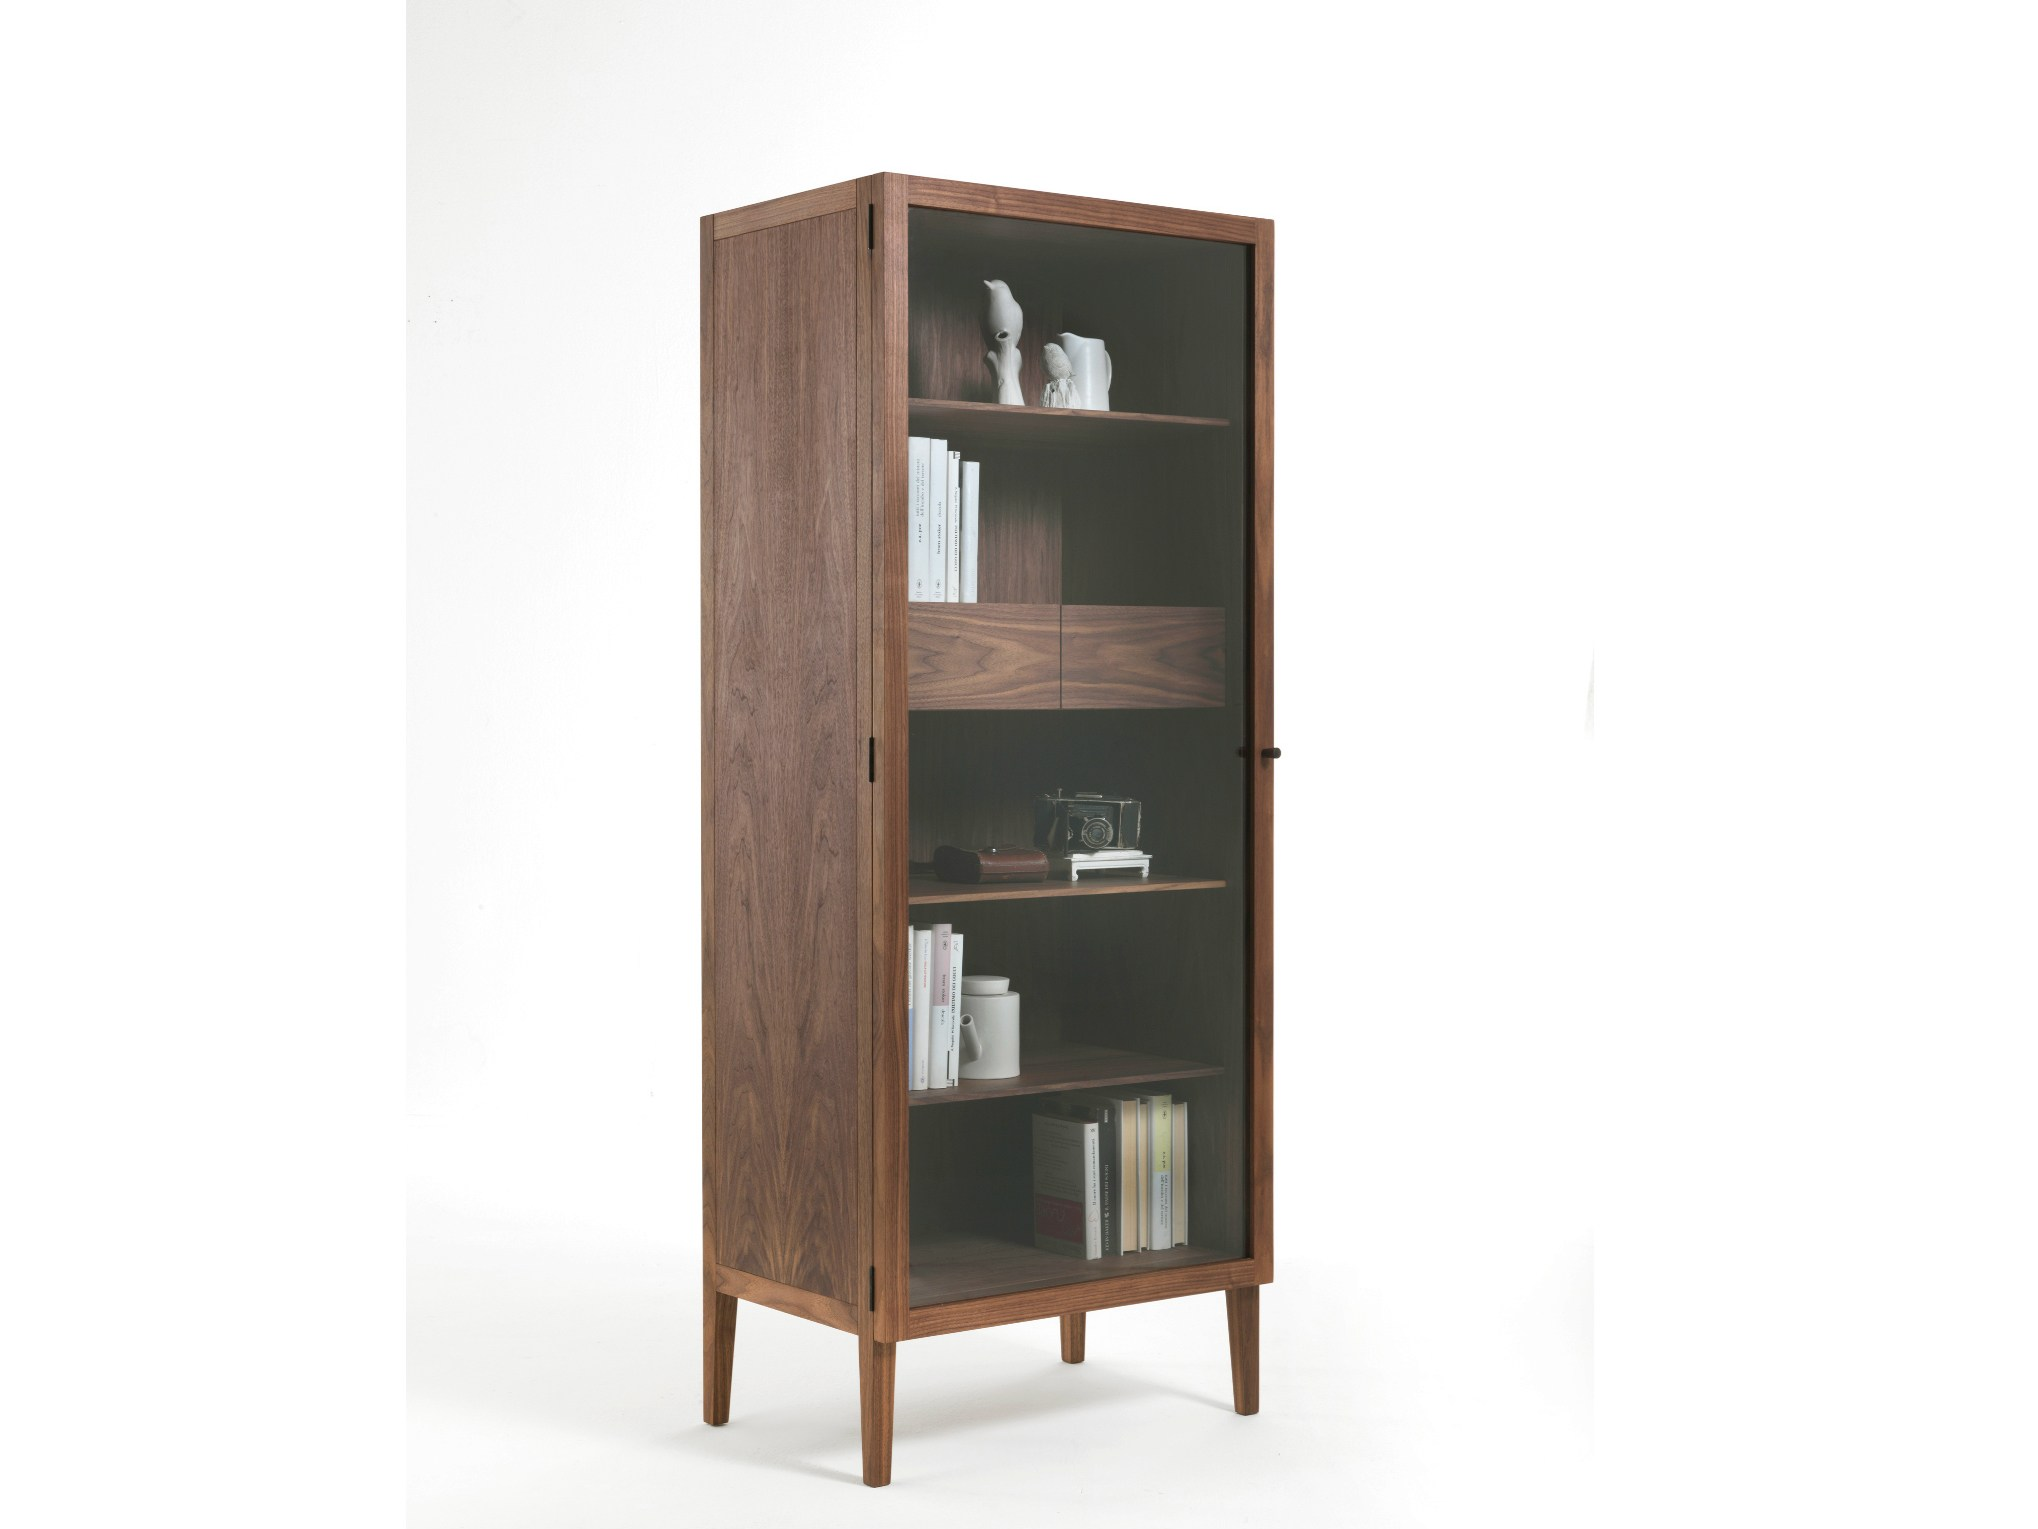 Solid wood display cabinet LIGHT SMALL by Riva 1920 design